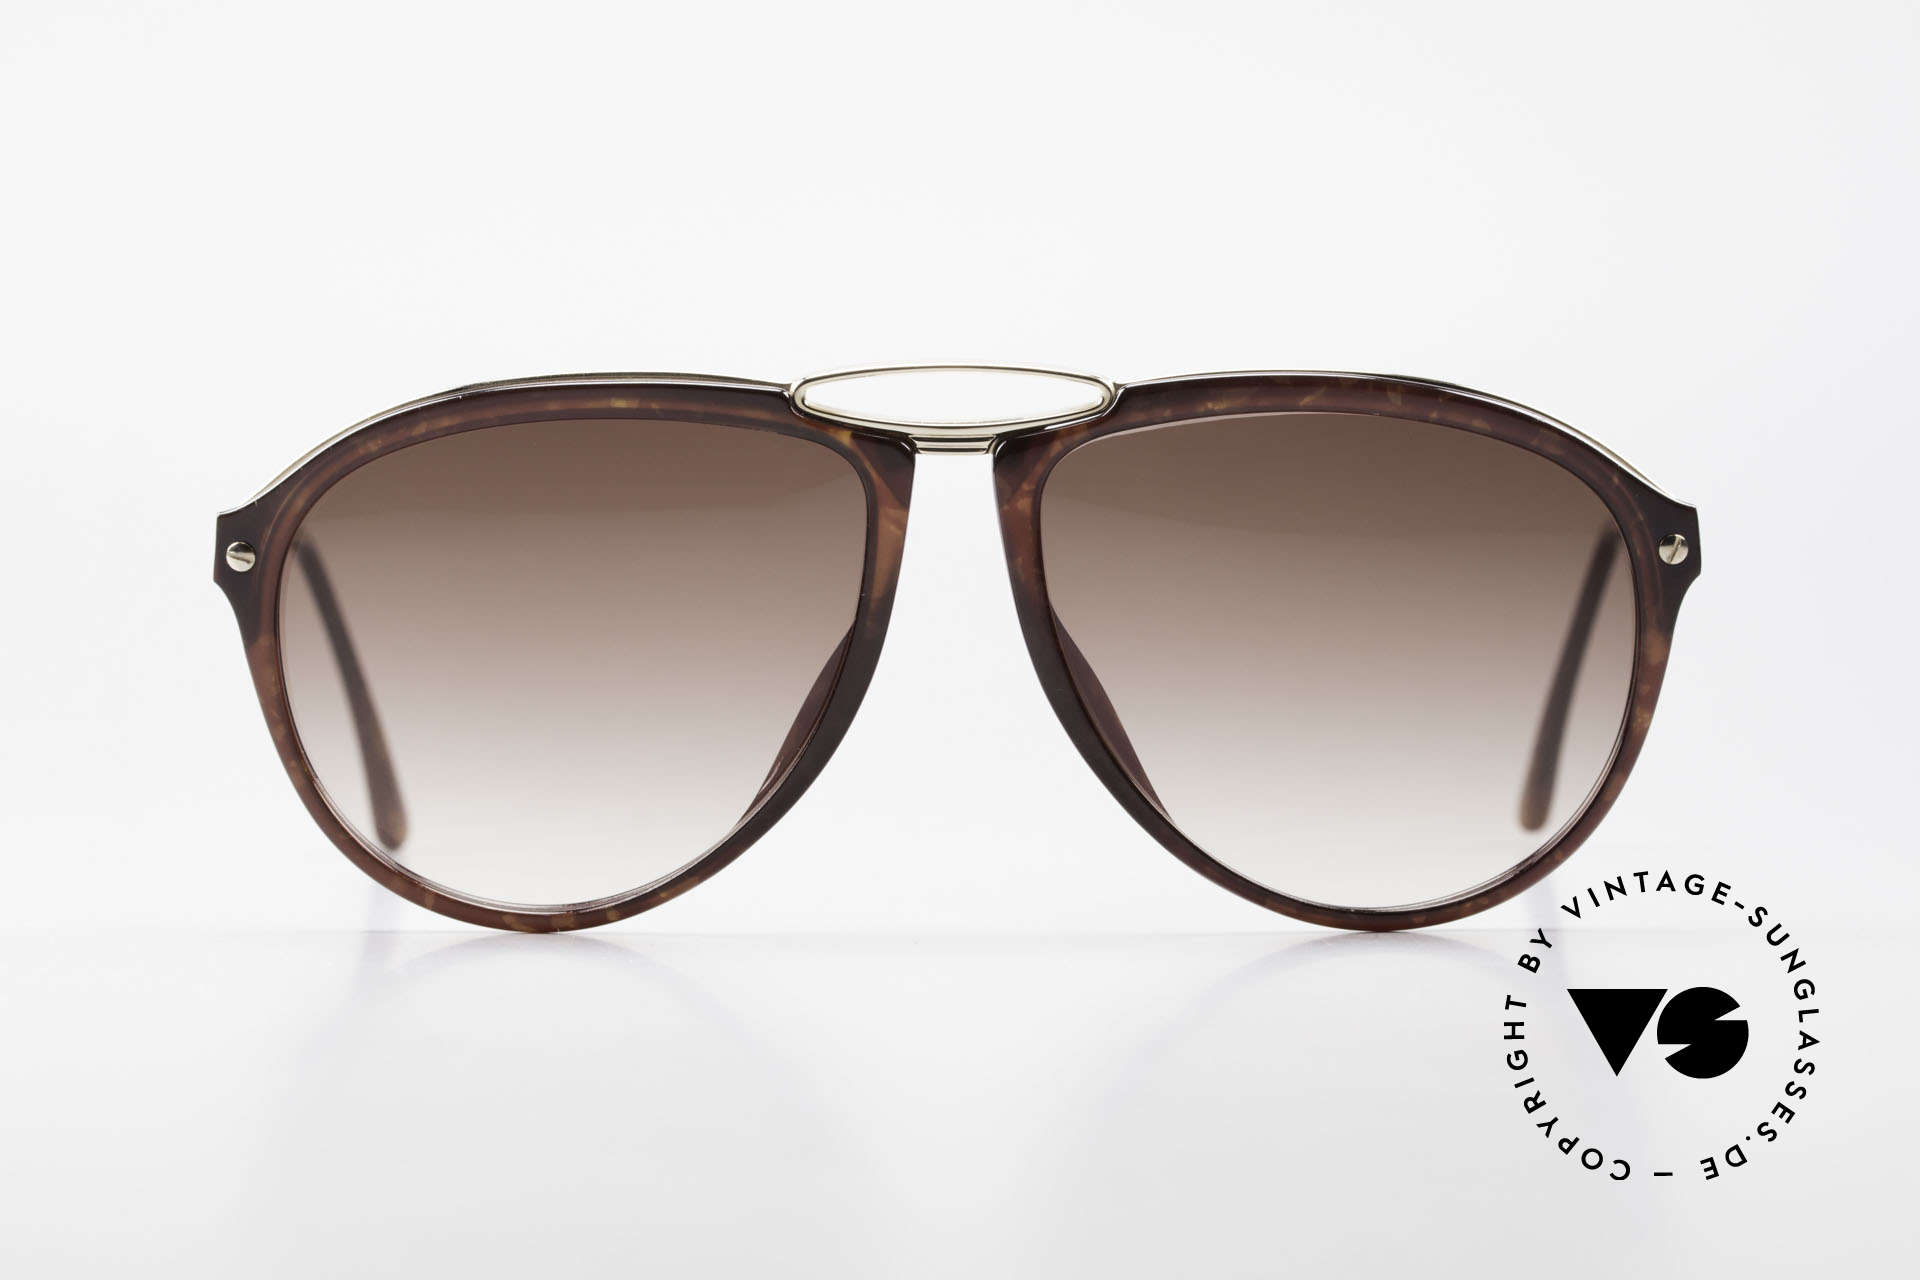 Christian Dior 2523 True 80's No Retro Sunglasses, a true alternative to the ordinary 'aviator-style', Made for Men